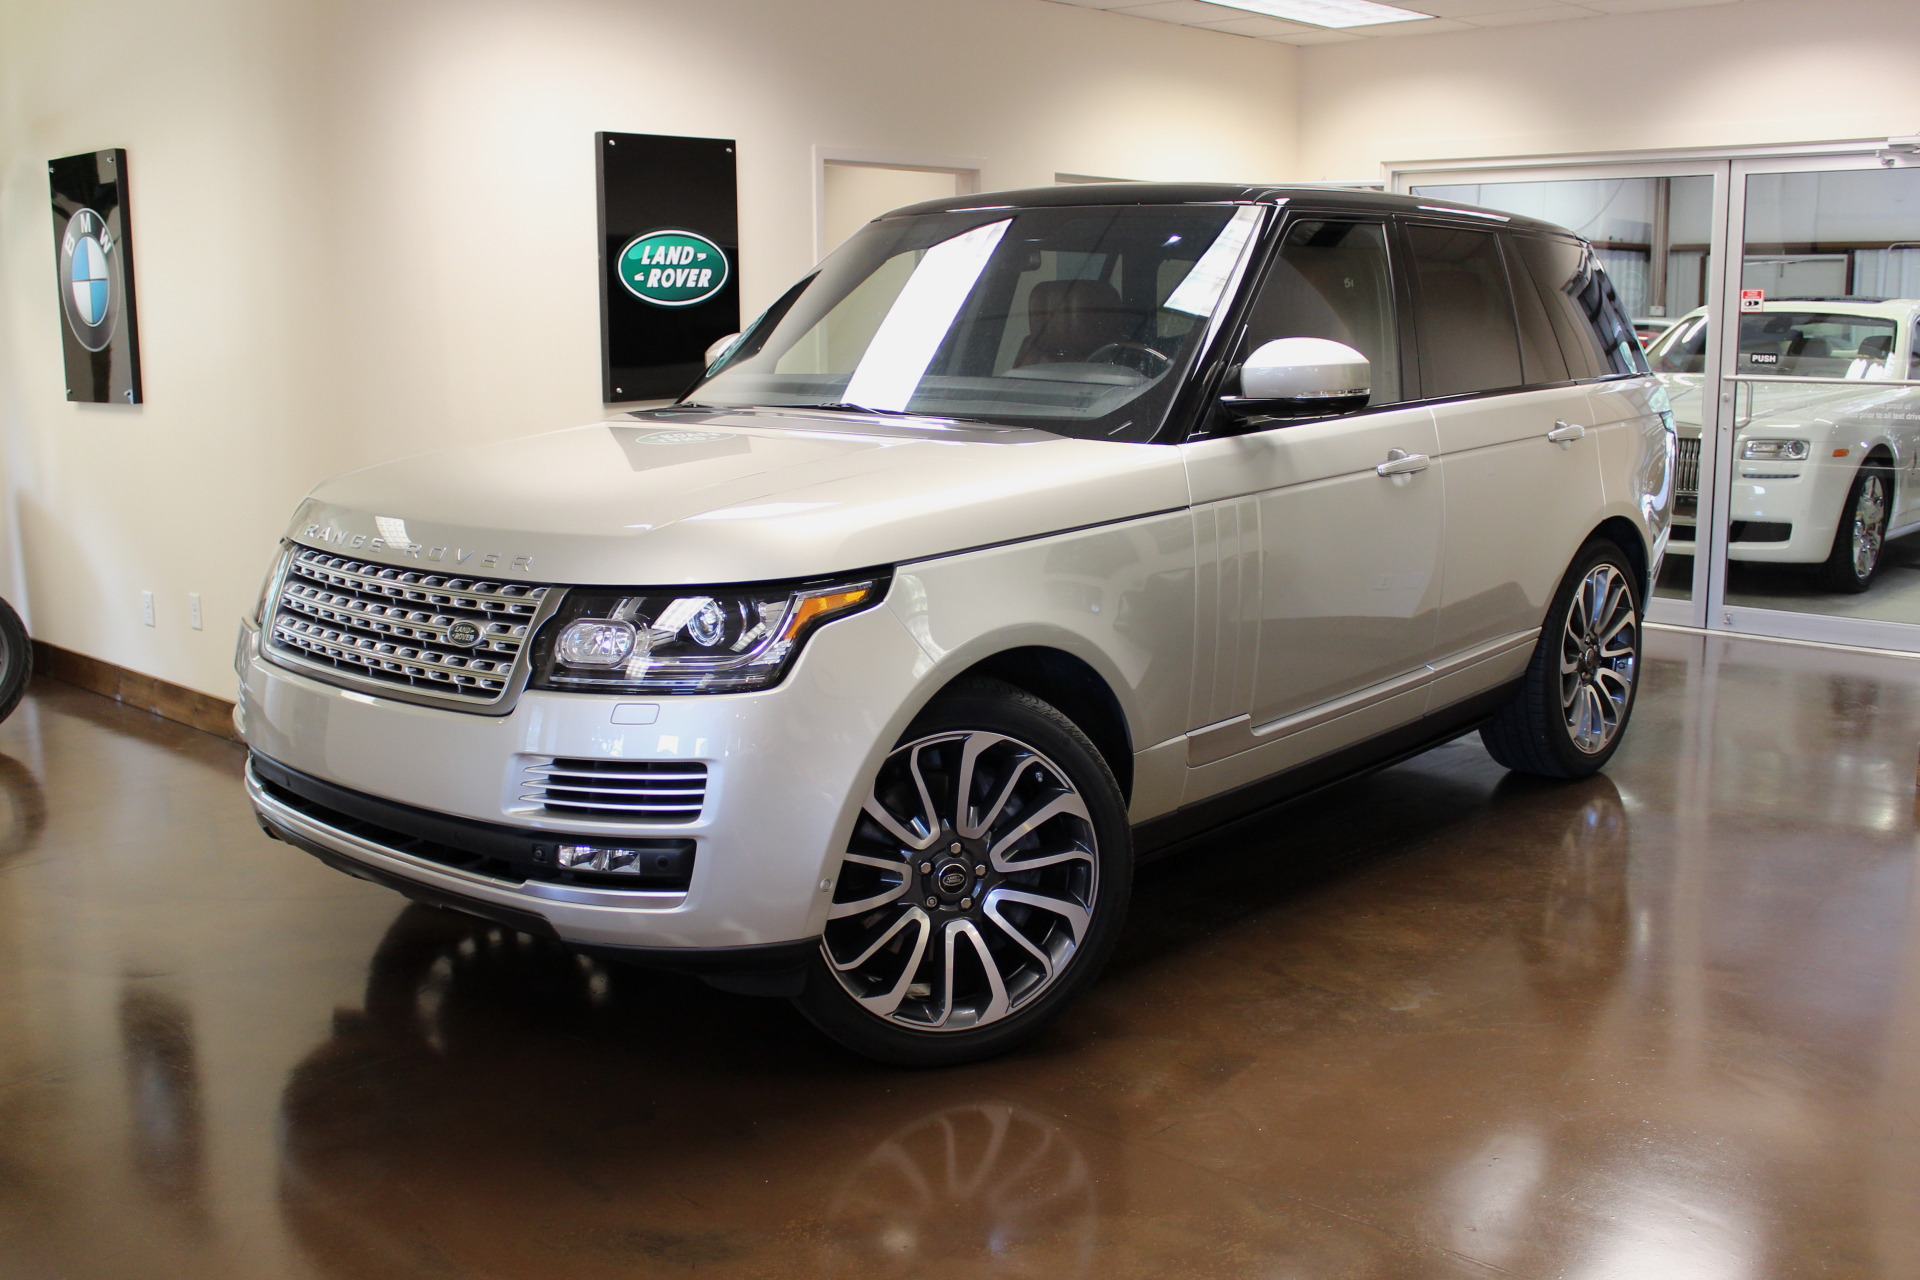 Used 2014 Land Rover Range Rover stock P3080 Ultra Luxury Car